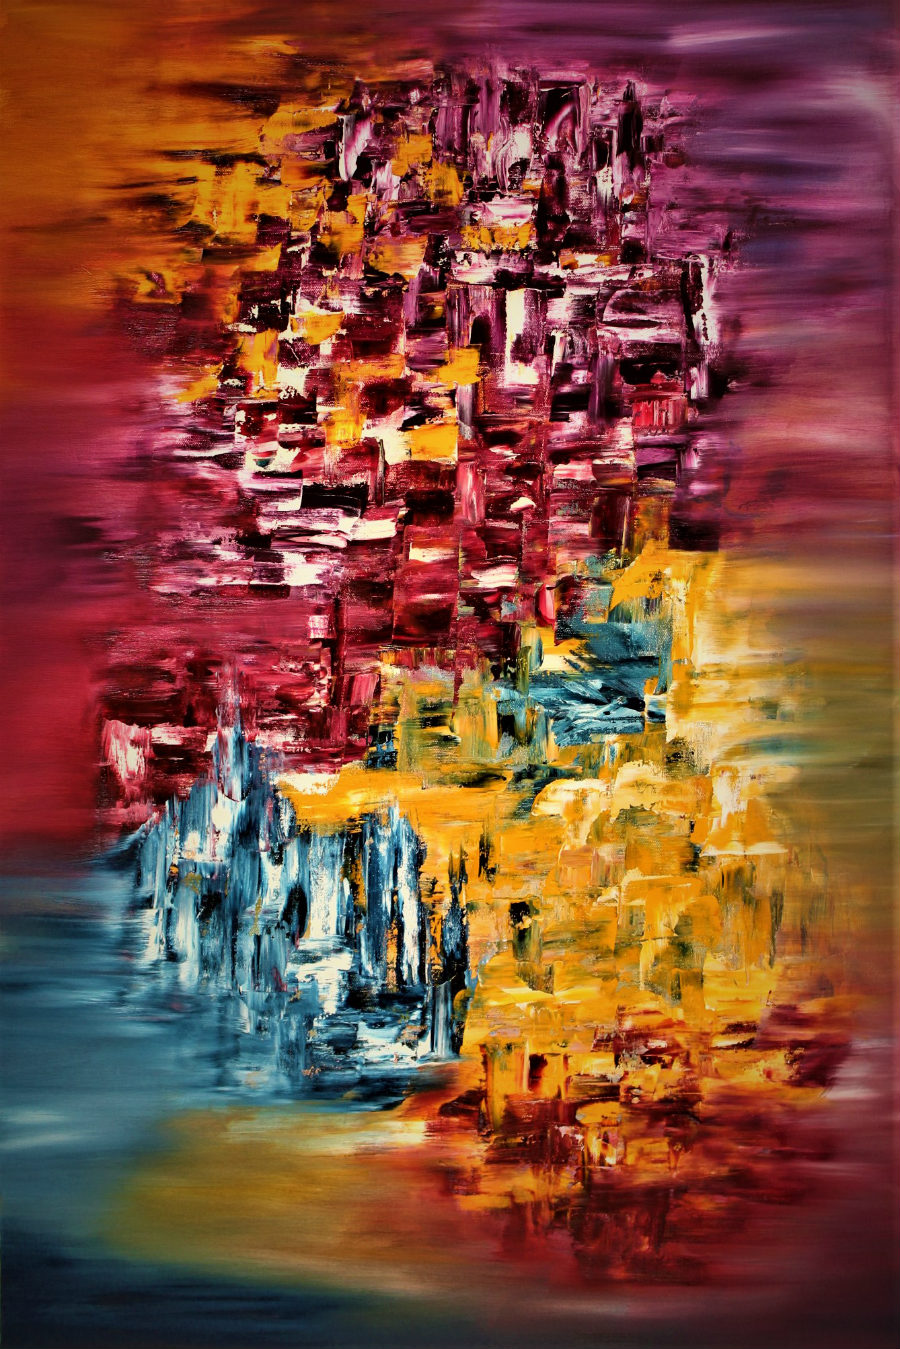 An abstract painting blurry on the borders, vivid yellows, reds, blues mix in the middle.